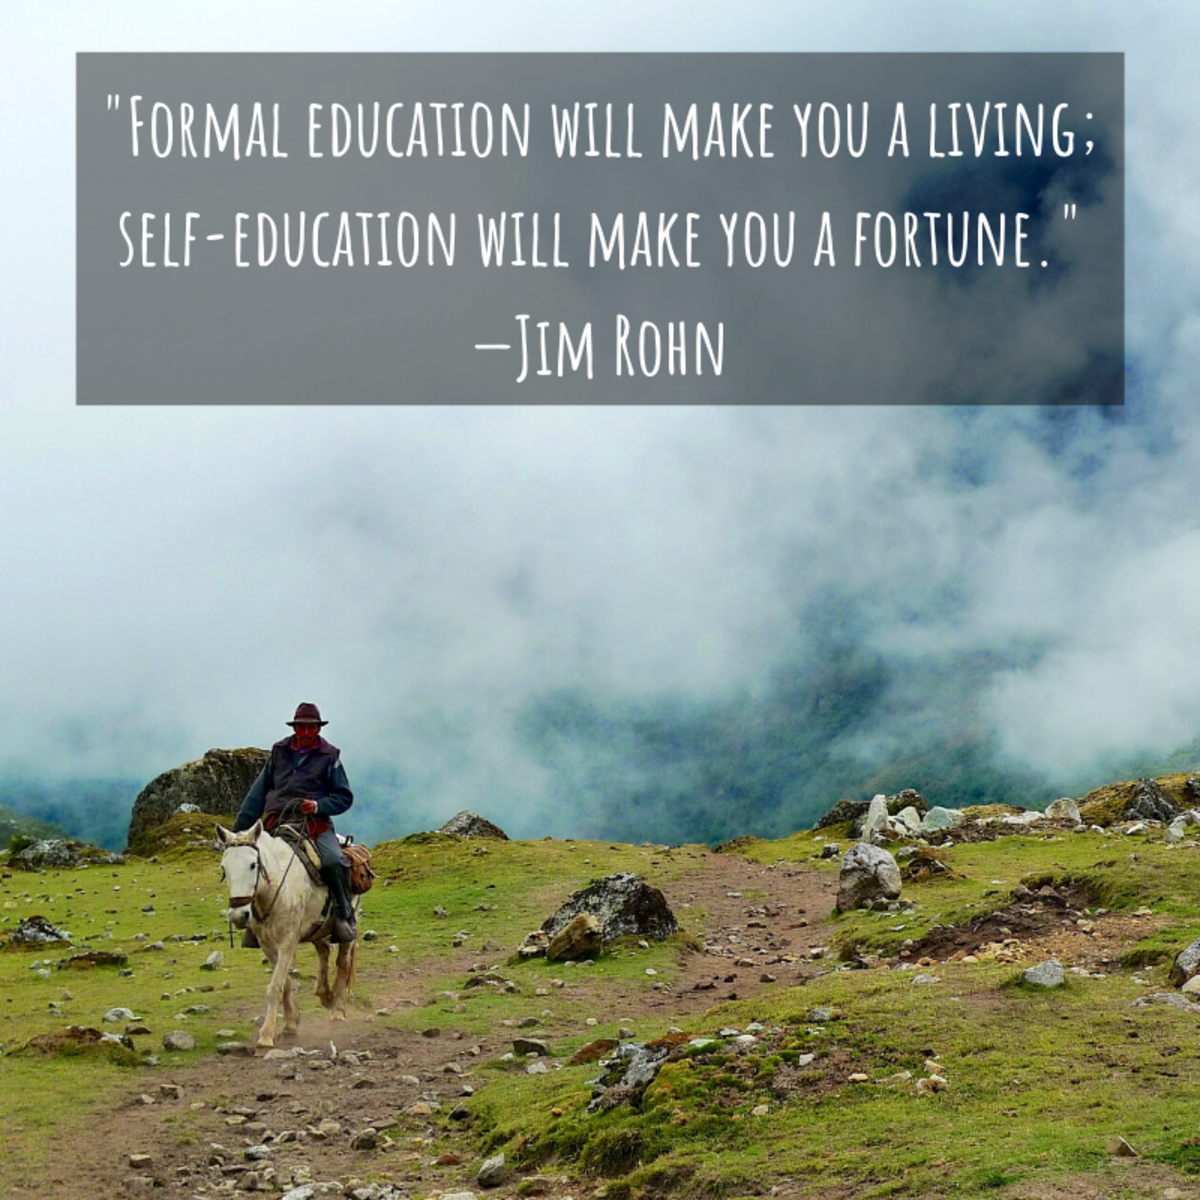 """""""Formal education will make you a living; self-education will make you a fortune."""" —Jim Rohn"""